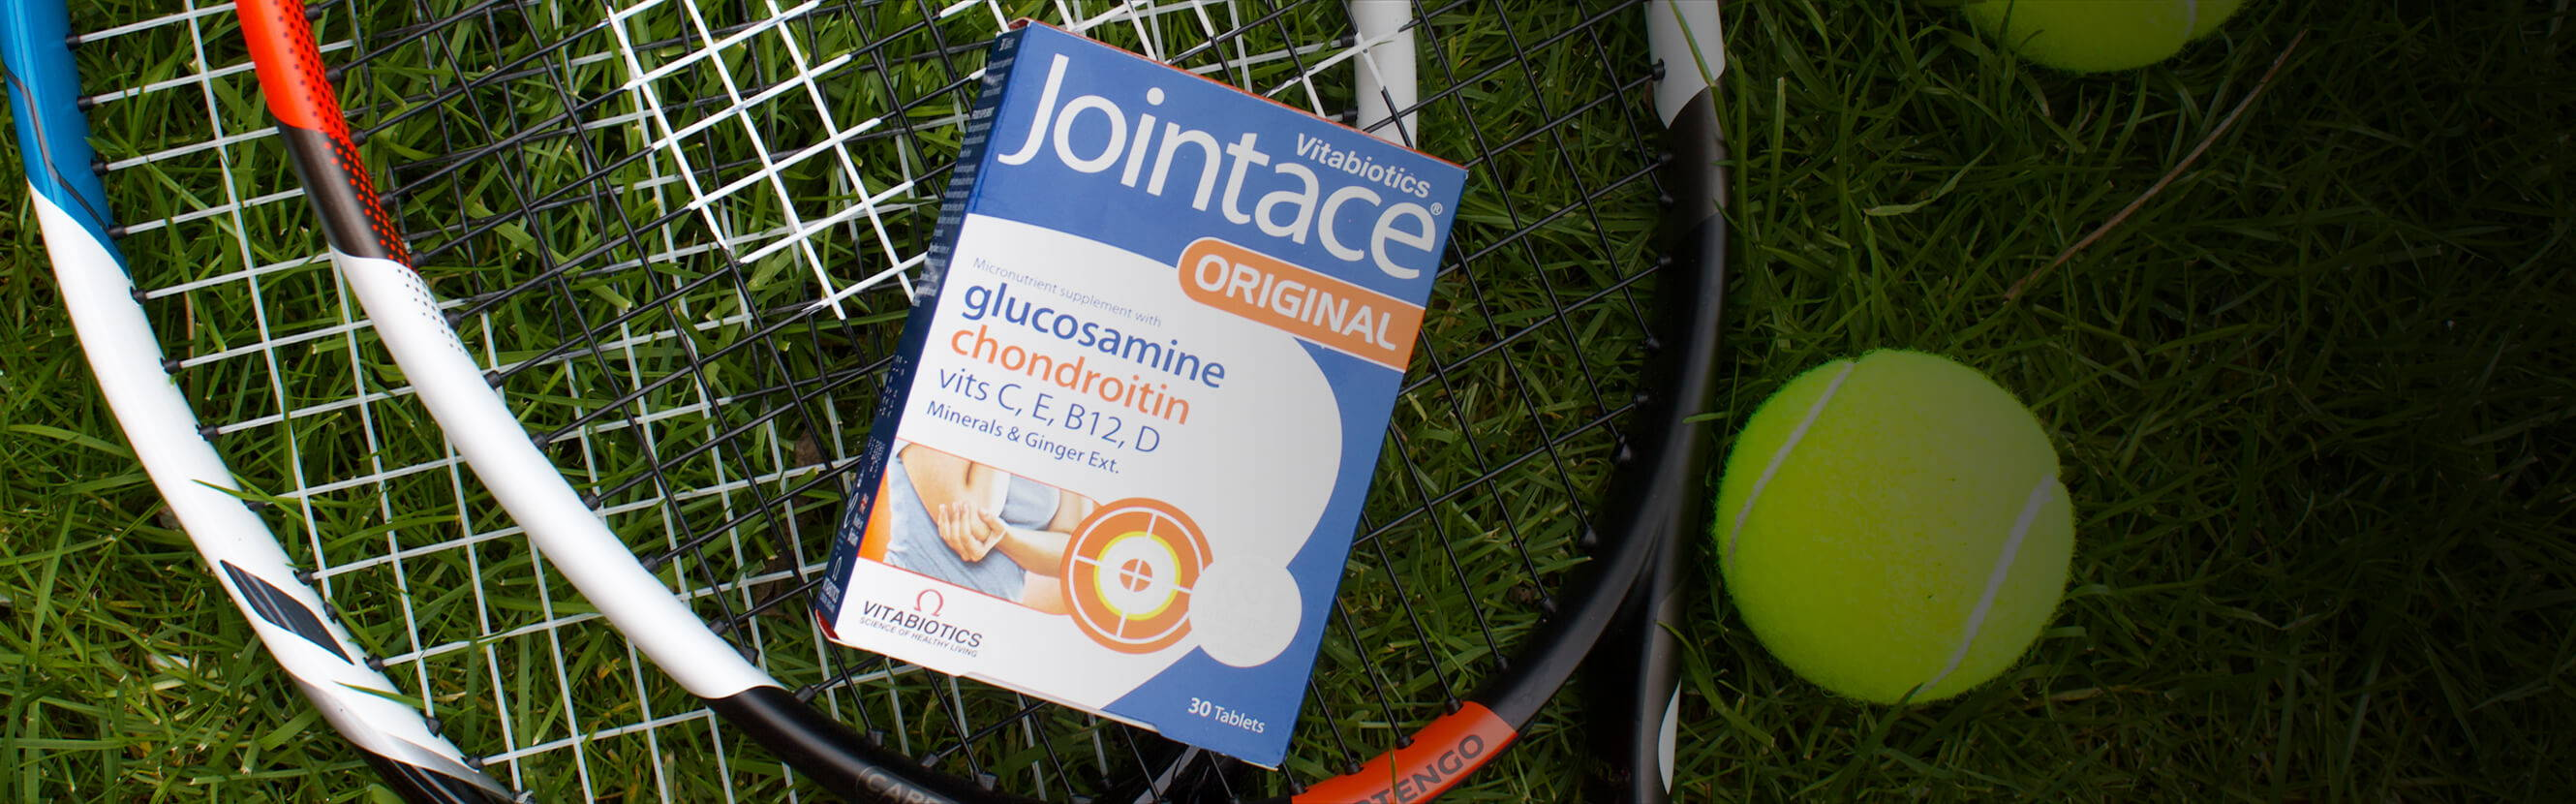 From marathon runners to busy mums. From a late-in-the-day meeting to later in life. We all want to stay active – and good cartilage and bone health is essential. That's why our experts developed Jointace Original, to provide unique combinations of trace minerals, vitamins and nutrients in two daily tablets